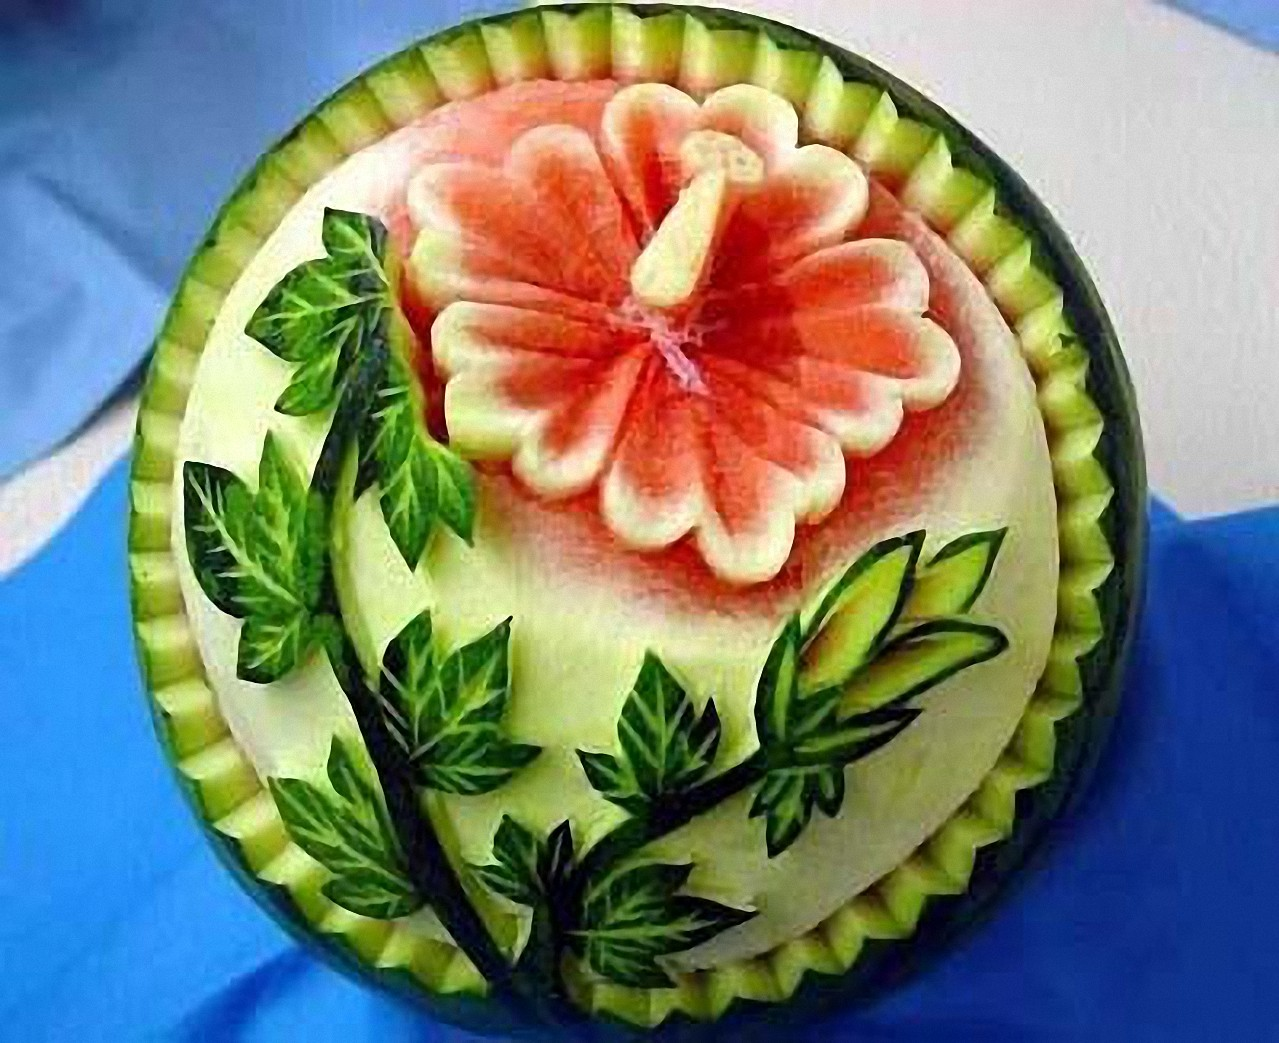 Watermelon-Carving-3(10)